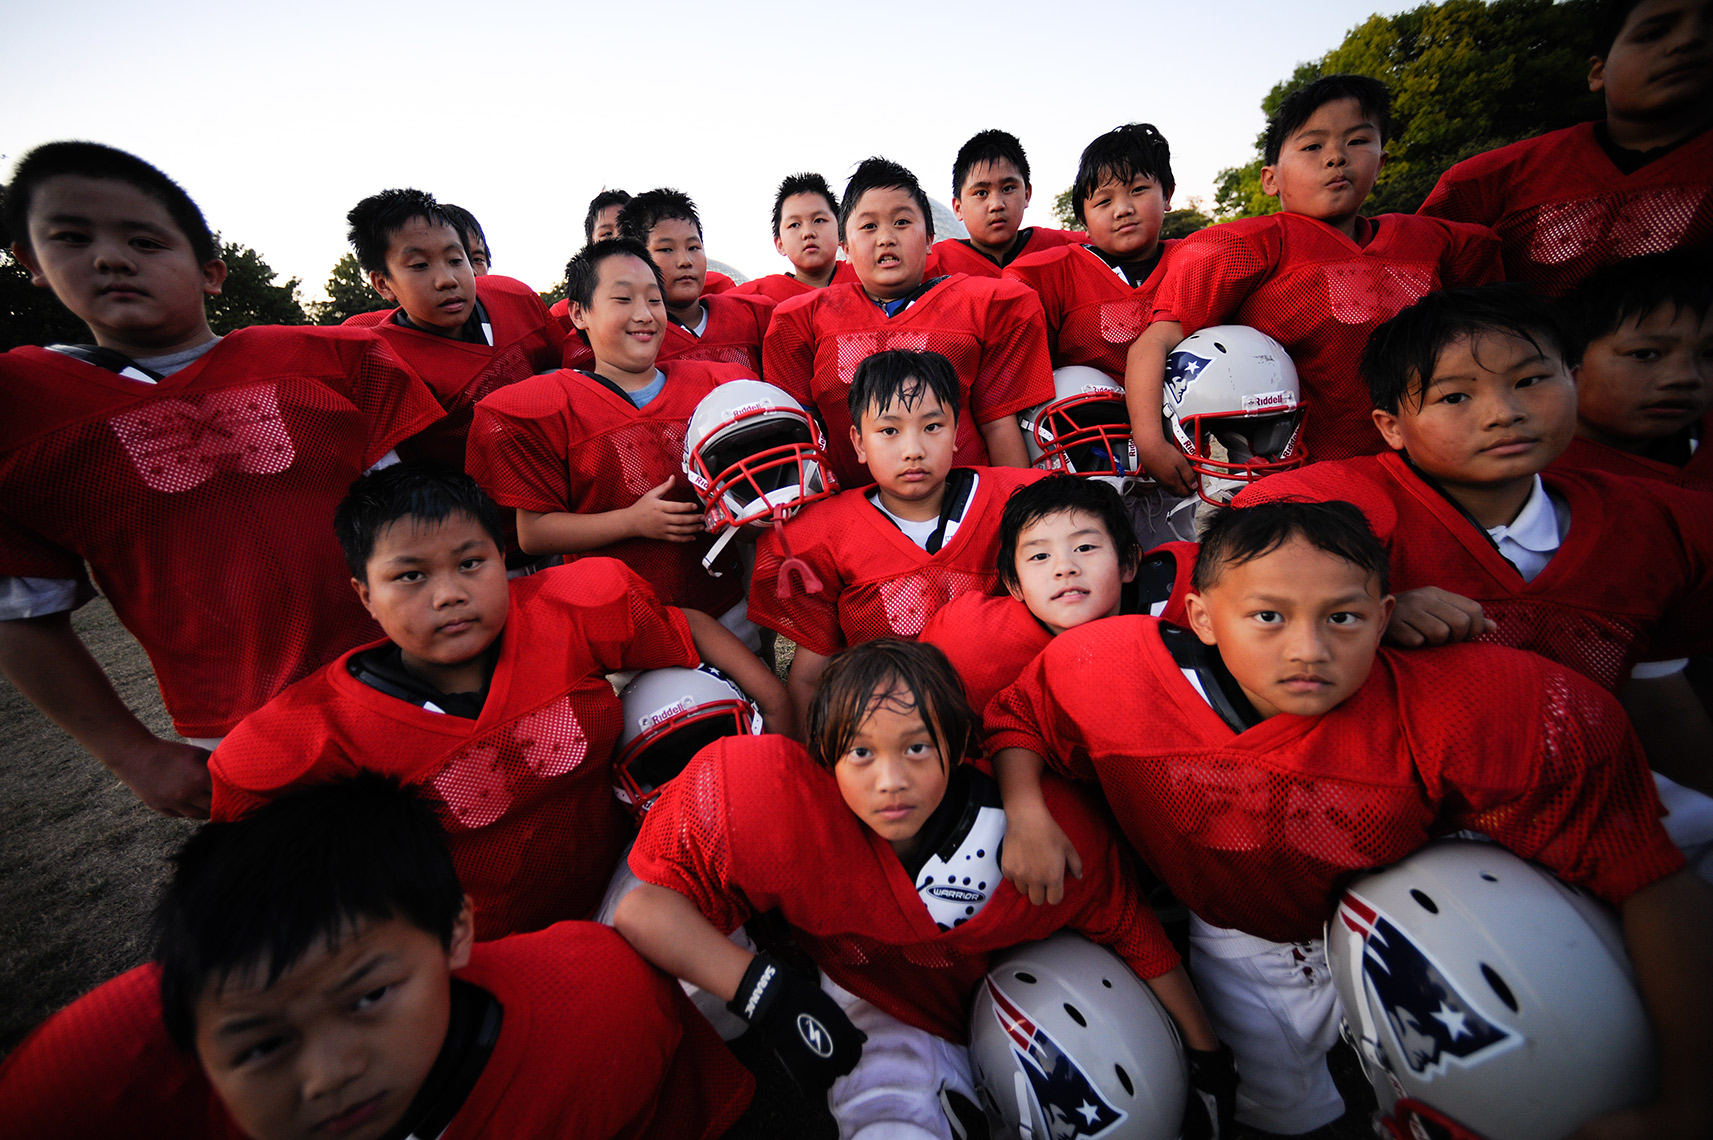 W-Hmong-Football-Team